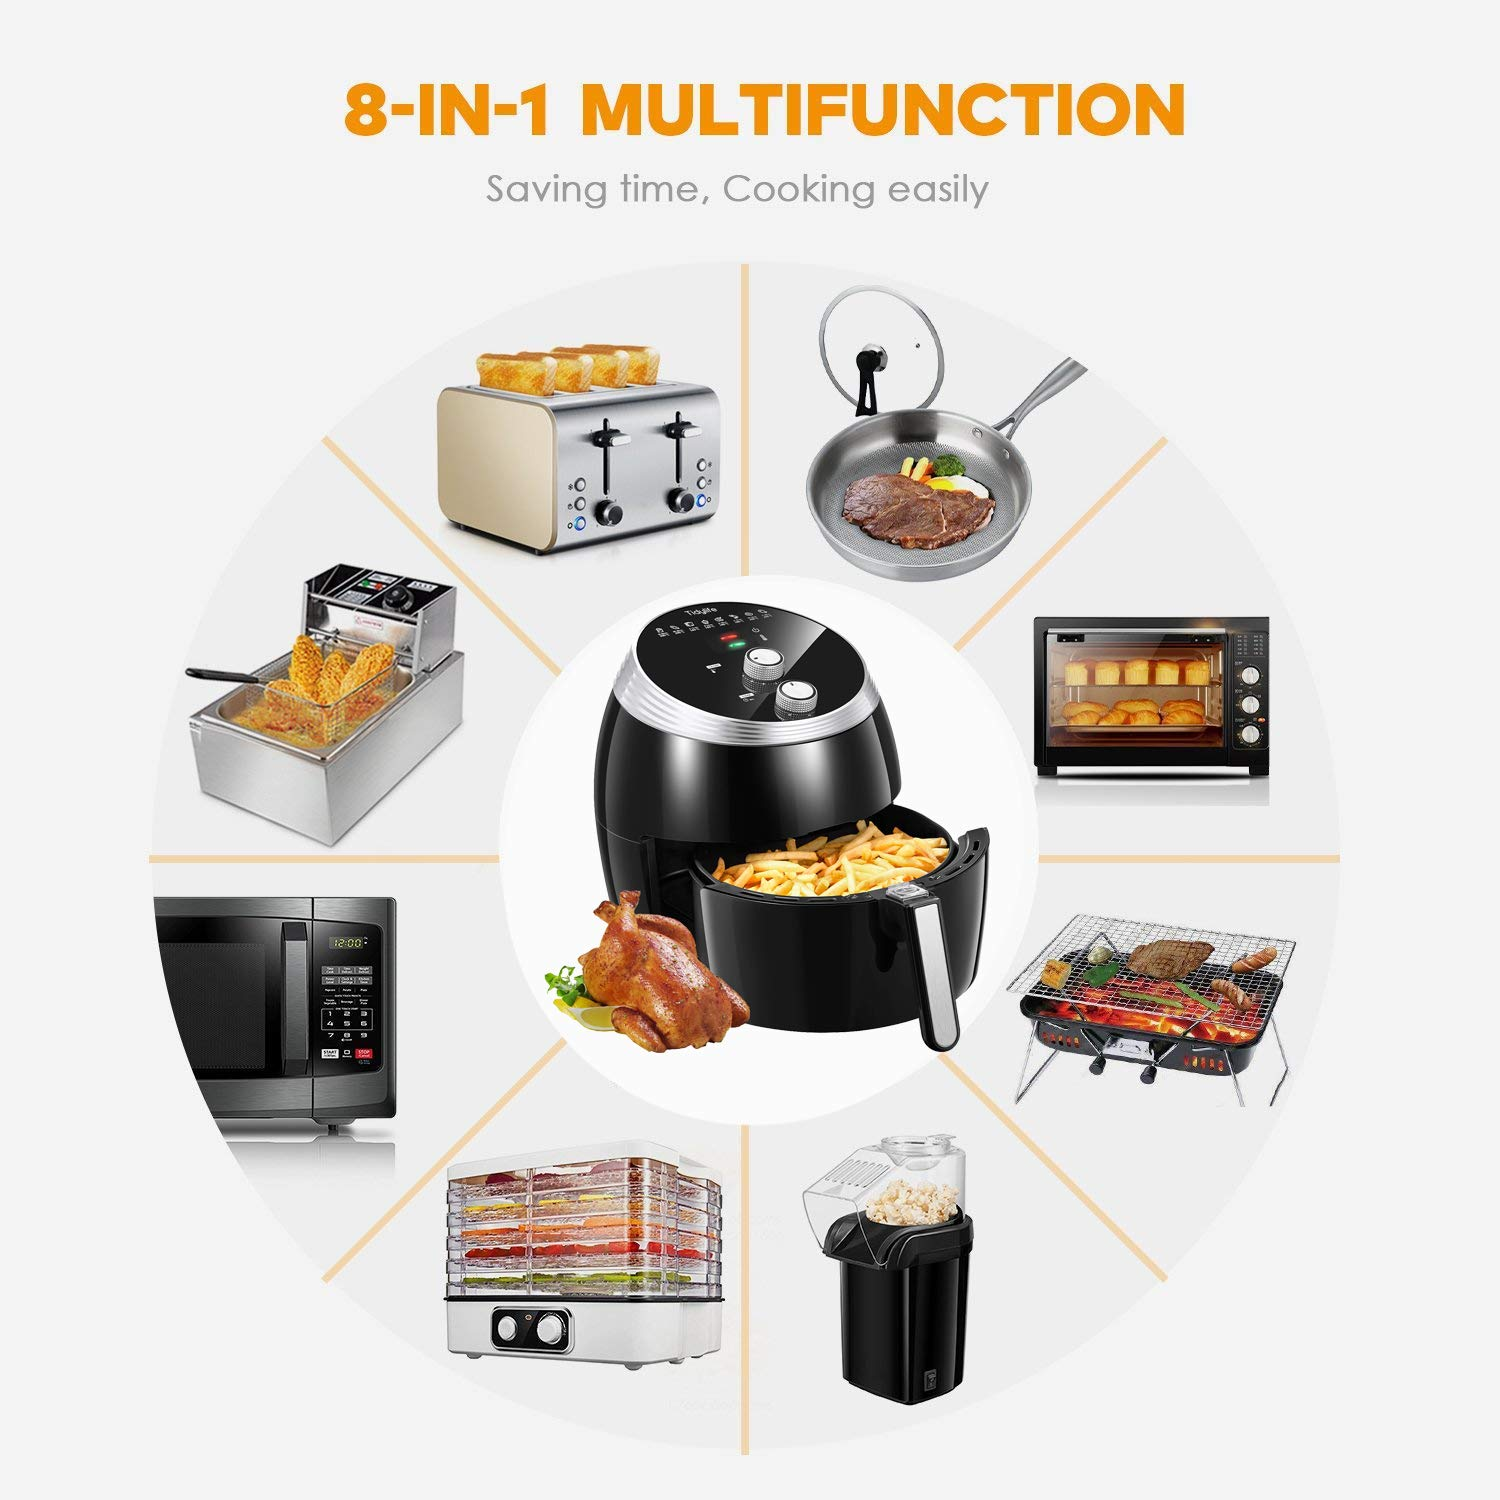 Air Fryer, Tidylife 6.3QT Large Air Fryer, 1700W Oilless XL Oven Cooker, Smart Time and Temperature Control, 7 Cooking Preset, 180-400℉Hot Air Fryer with Non-stick Basket, Auto Shut Off, 50+ Recipes by Tidylife (Image #2)